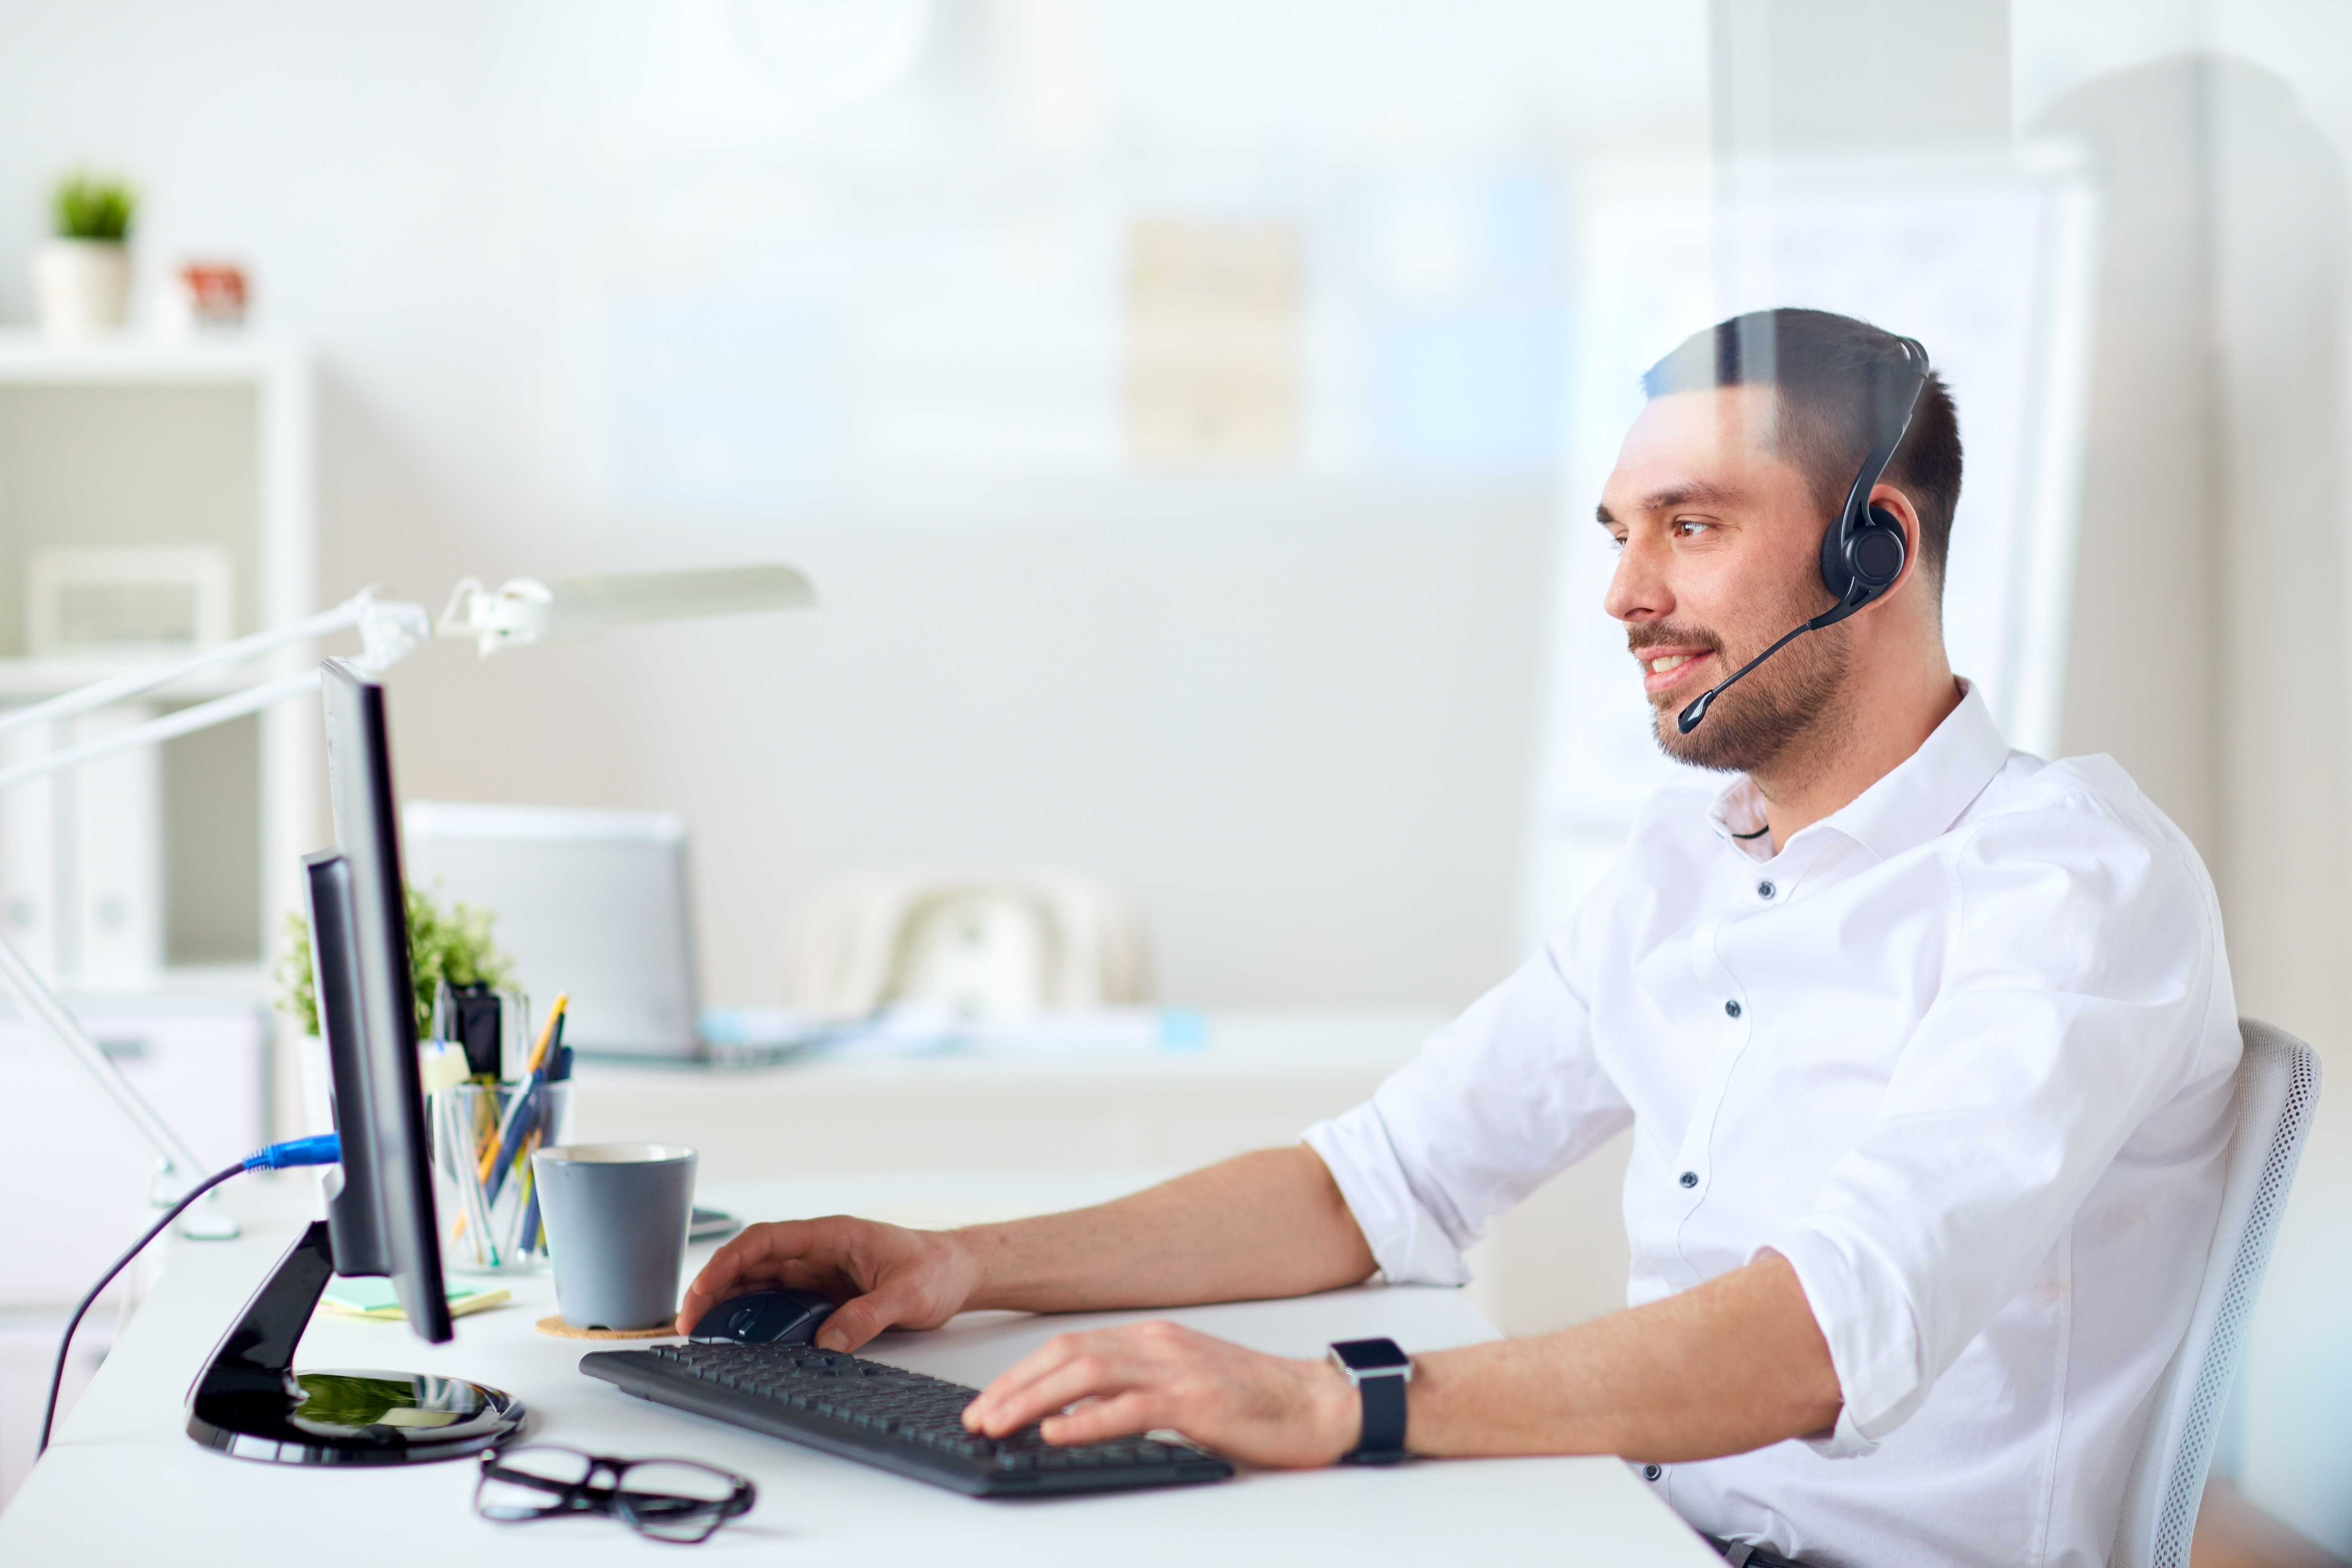 communication, business, people and technology concept - smiling businessman or helpline operator with headset and computer typing at office